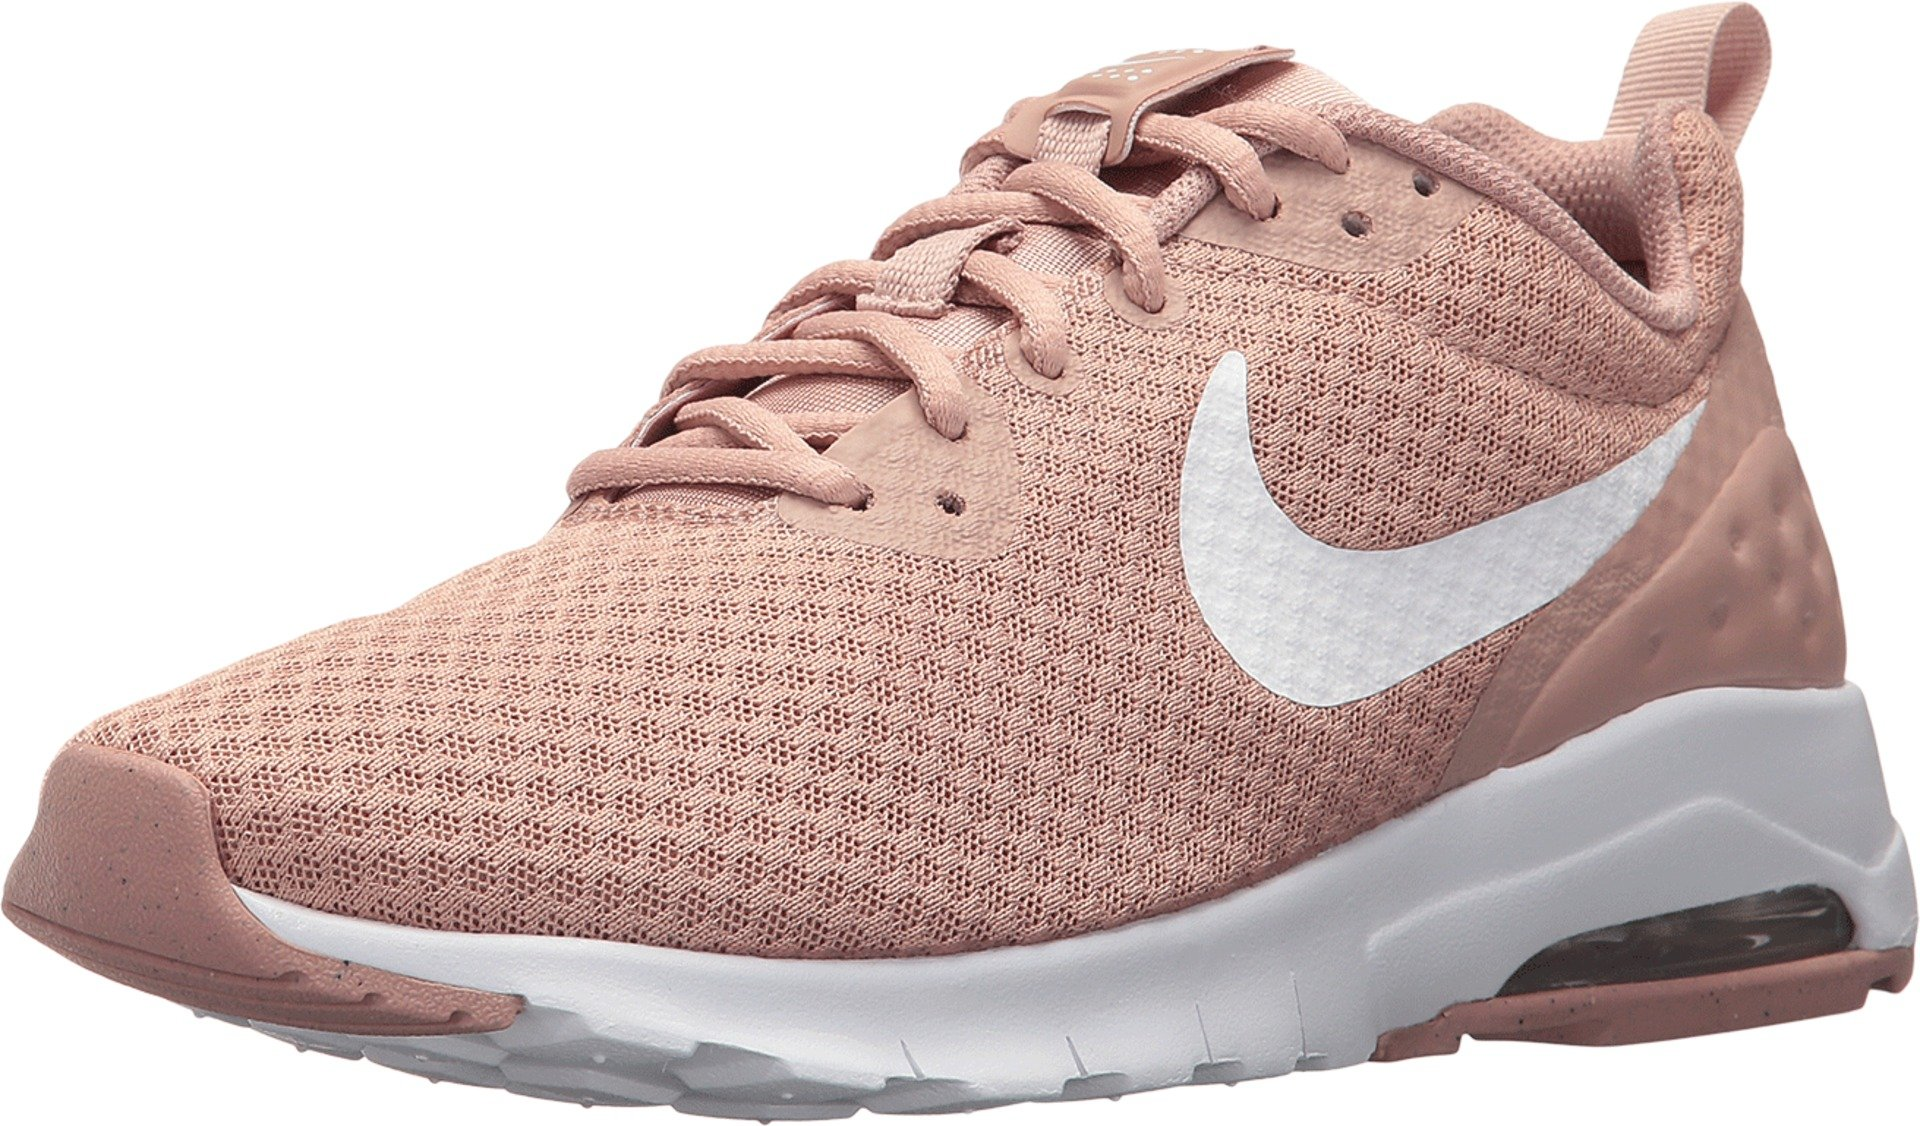 bfcd595c9a Galleon - NIKE Women's Air Max Motion LW Running Shoe, Particle Pink/White,  9 B US